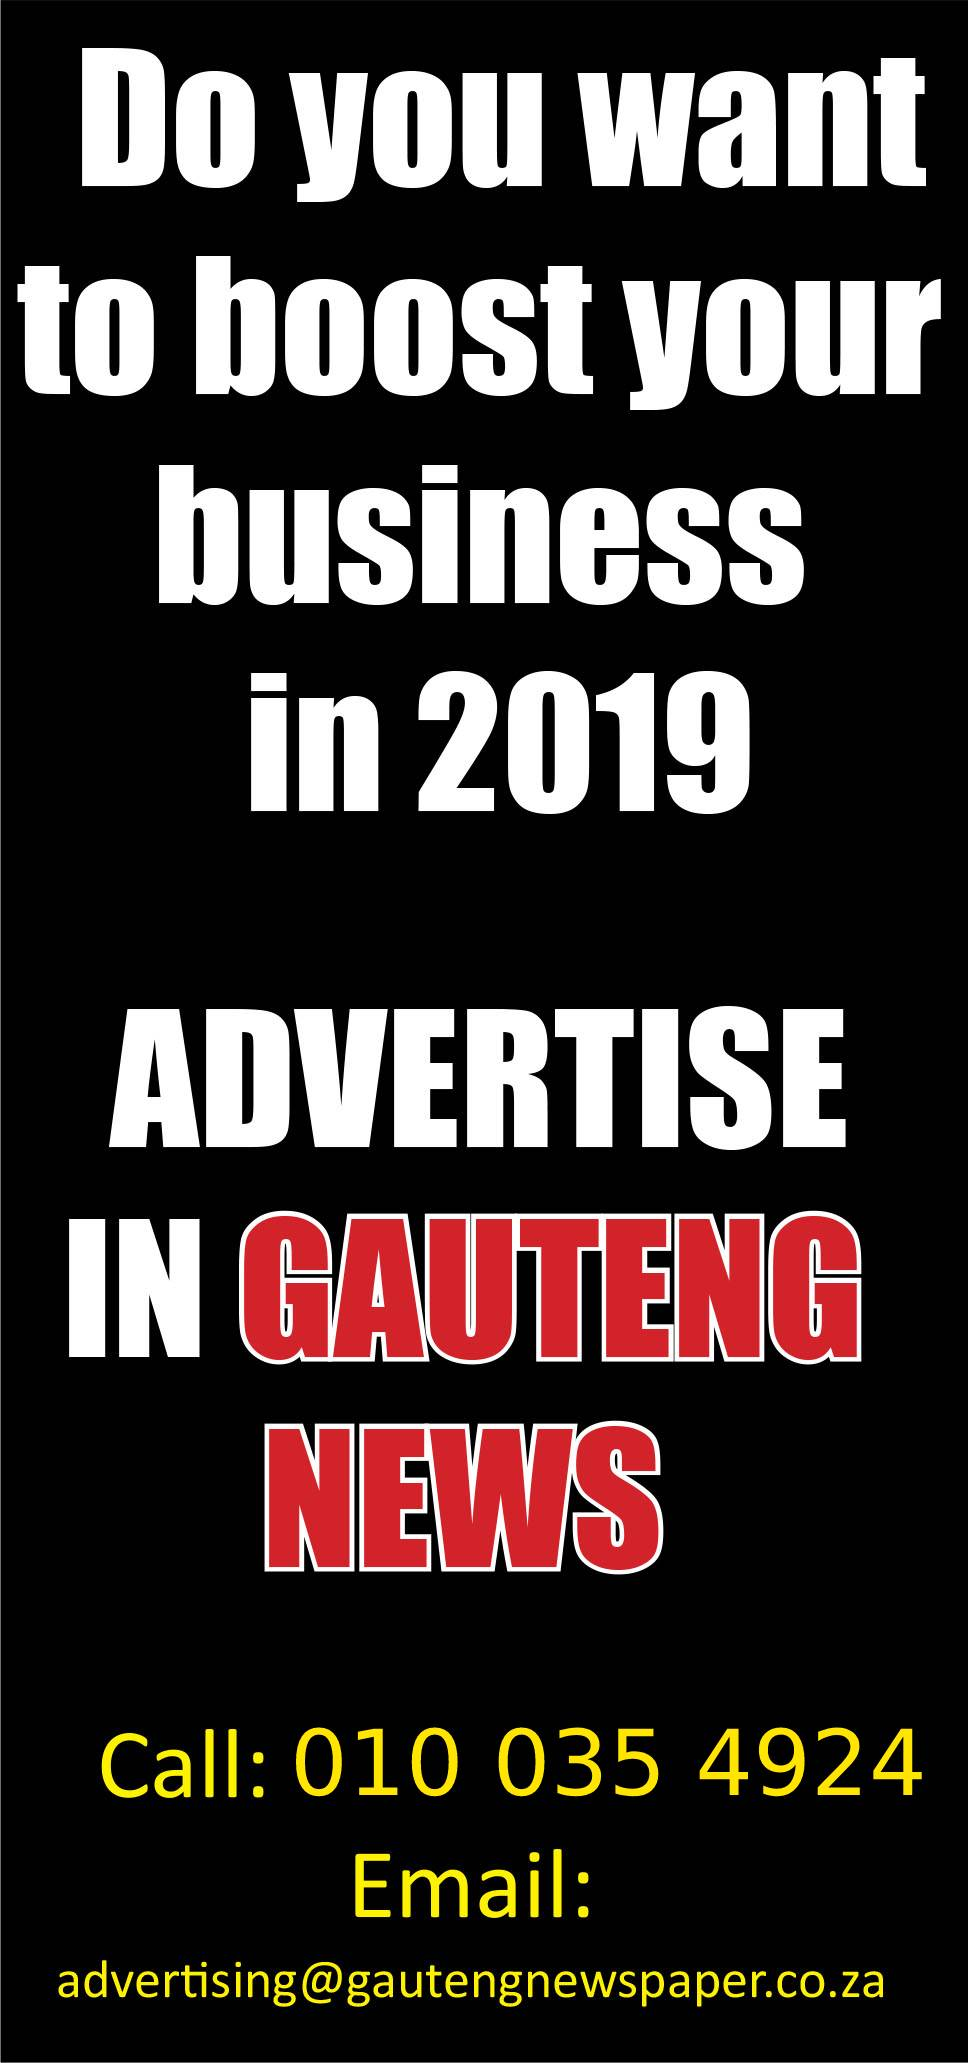 Gauteng advert